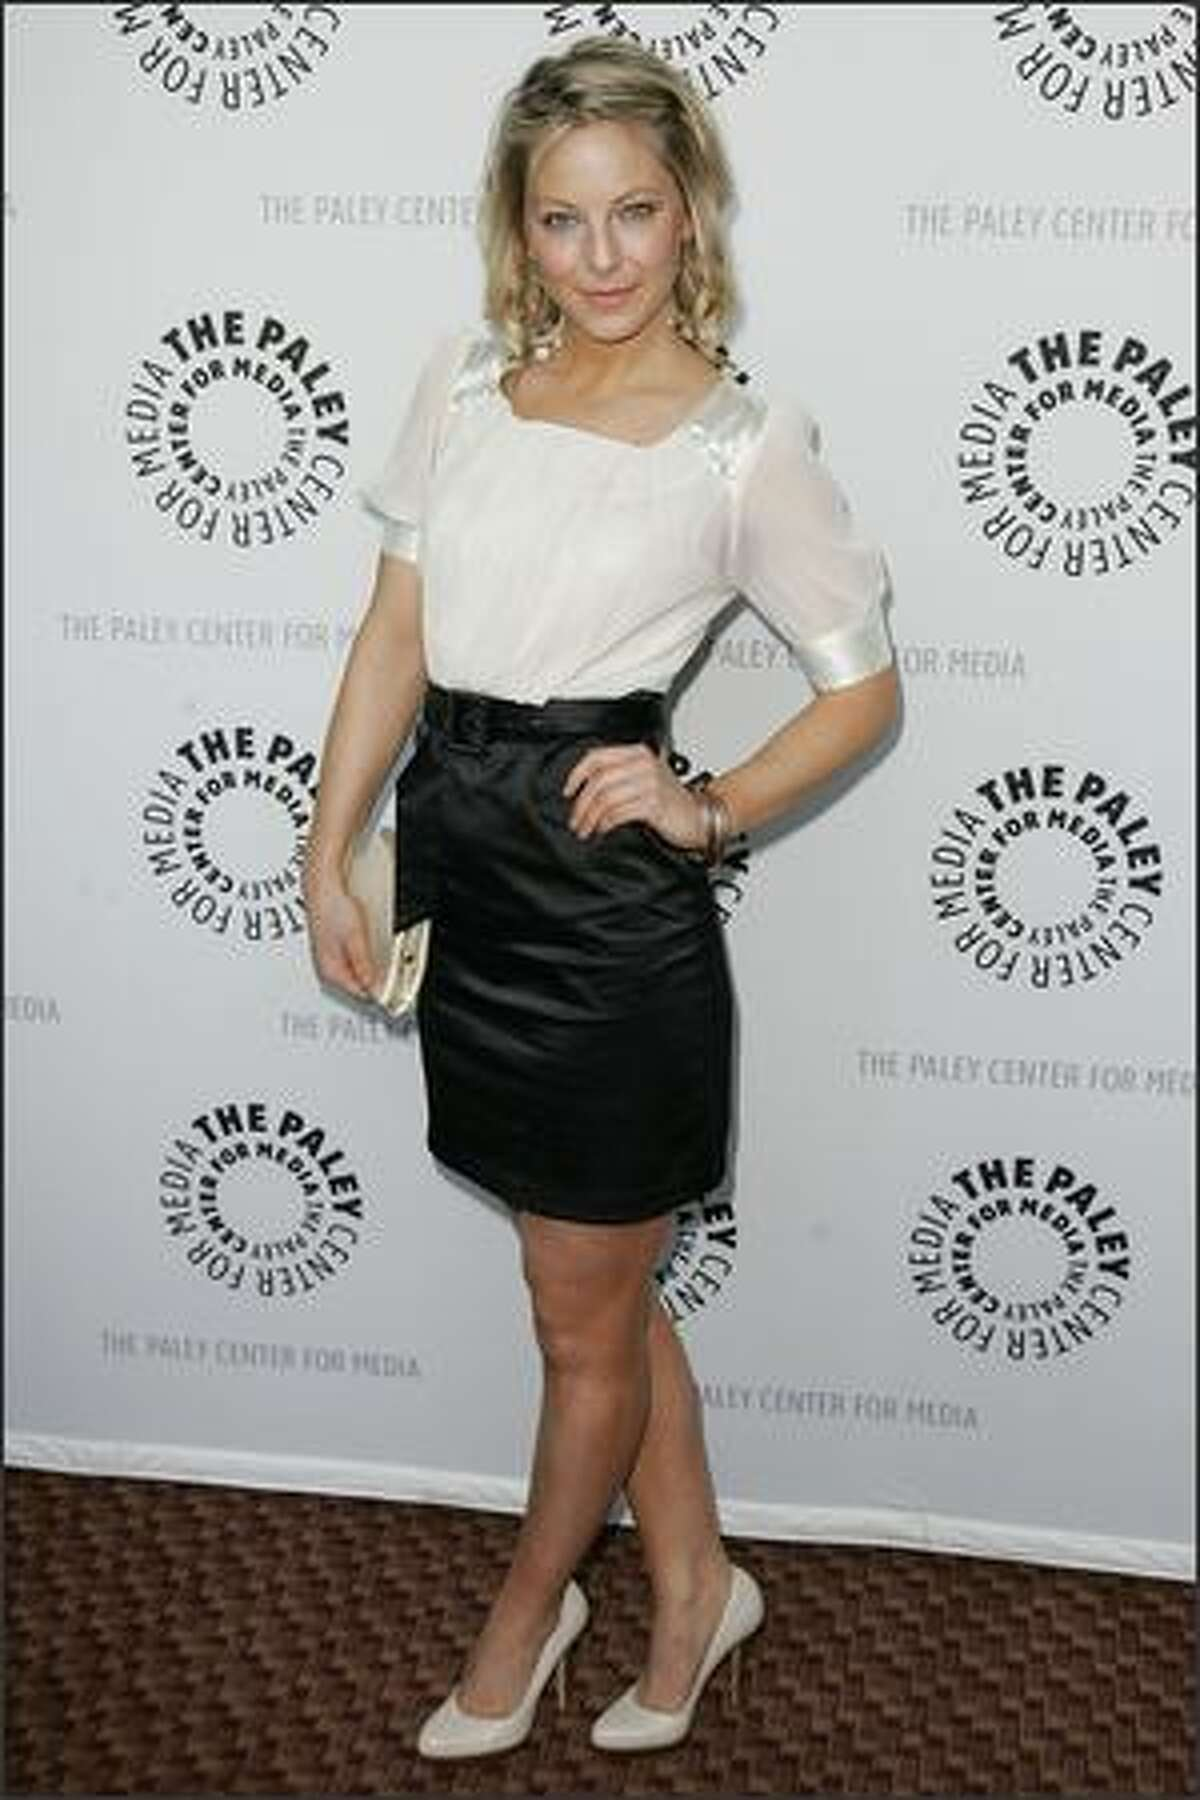 Actress Anastasia Griffith arrives at the Payley Center for Media's 25th annual Paley Television Festival at the Arclight Cinema on March 24, 2008 in Hollywood, Calif.